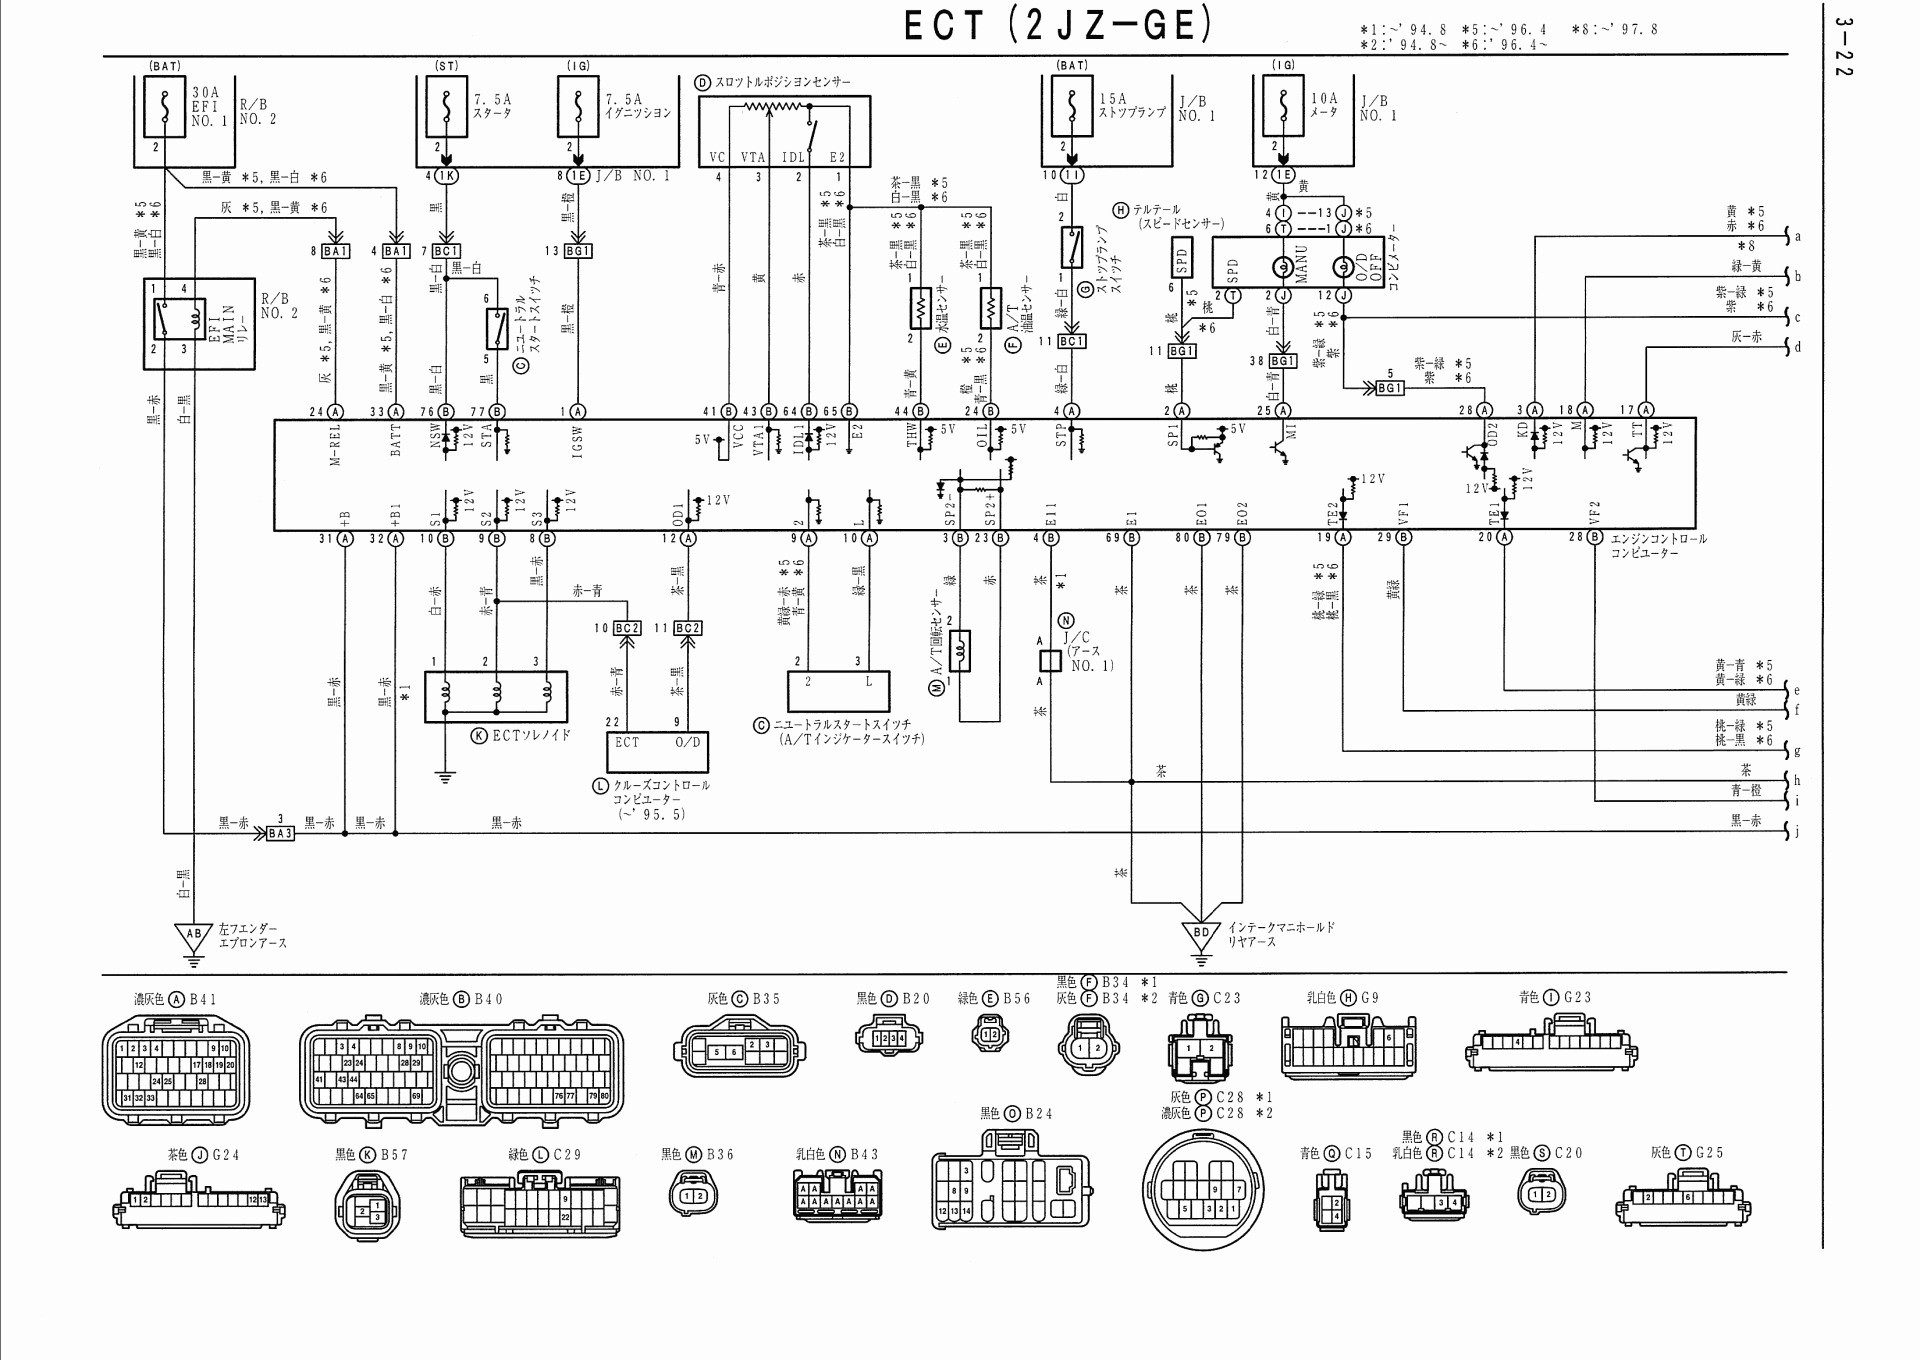 2002 Bmw X5 Motor Wiring Diagram Smart Diagrams E53 Engine Partment Schematic Circuit Rh Stripgore Com 325i Plug